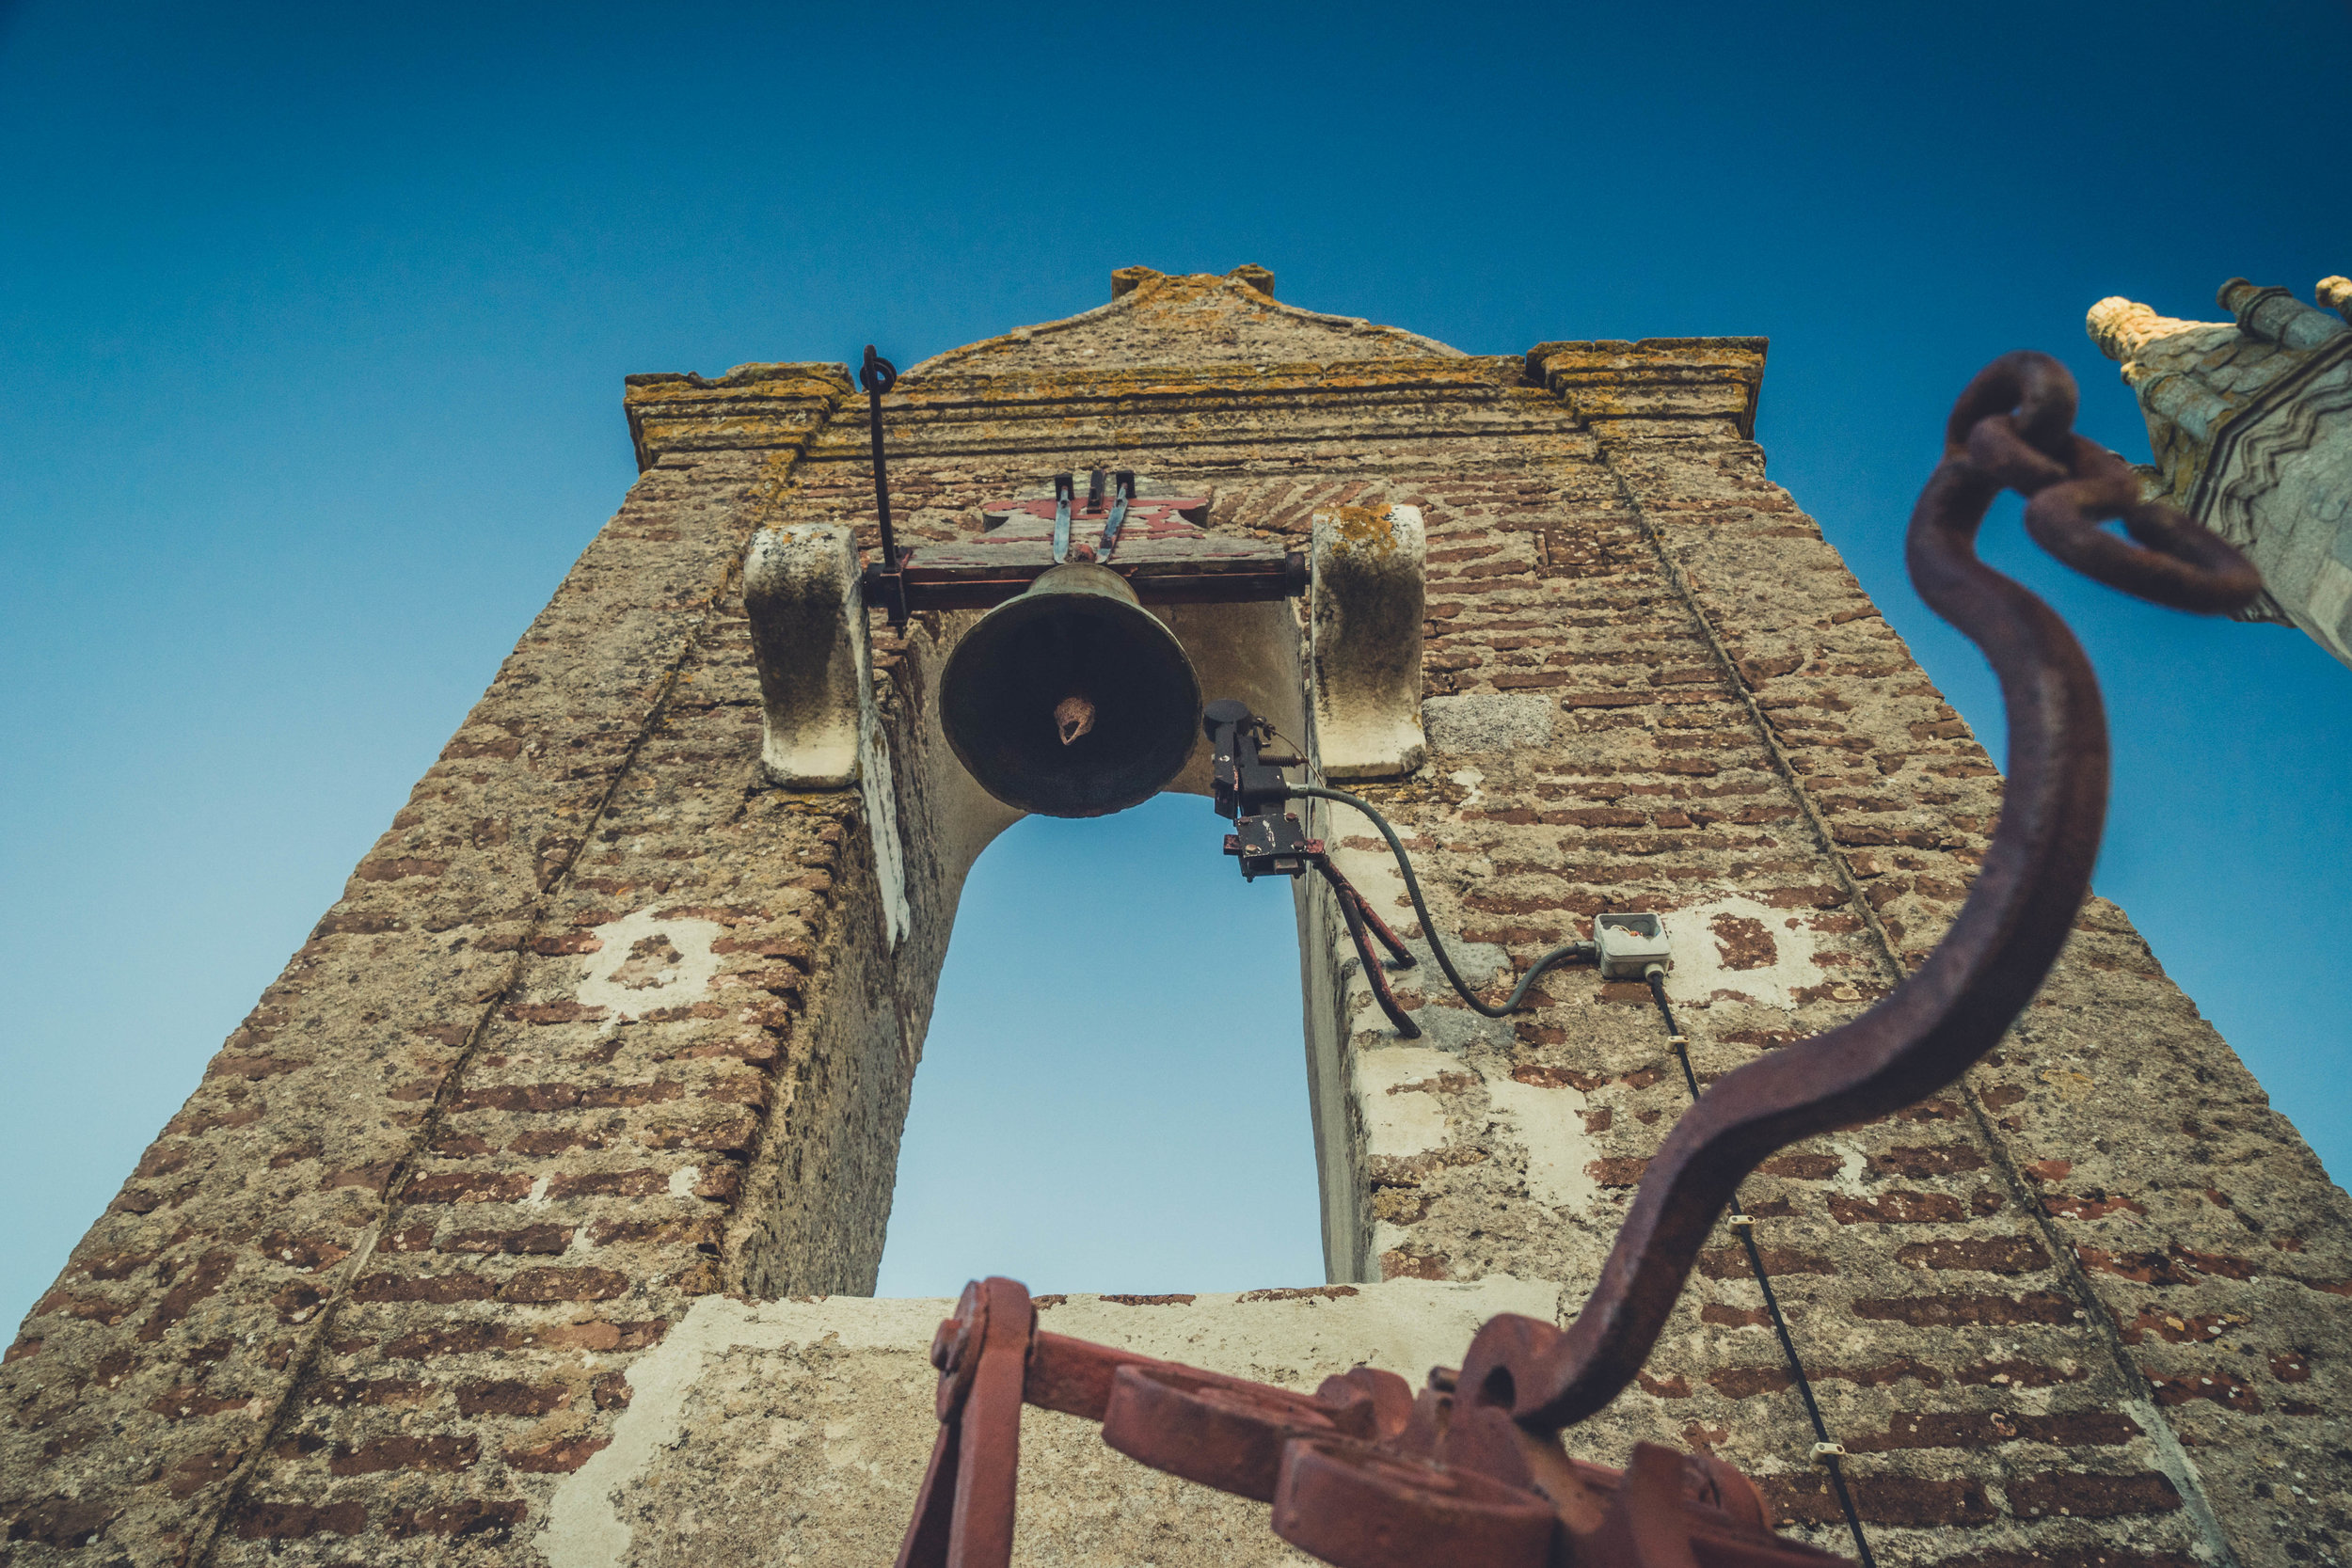 Evora. Roman Ruins. Portugal. Alentejo. Piliers. Roman city. ancient roman town. Blue sky. travel. adventure. history. historical. wine. architecture. bell.jpg